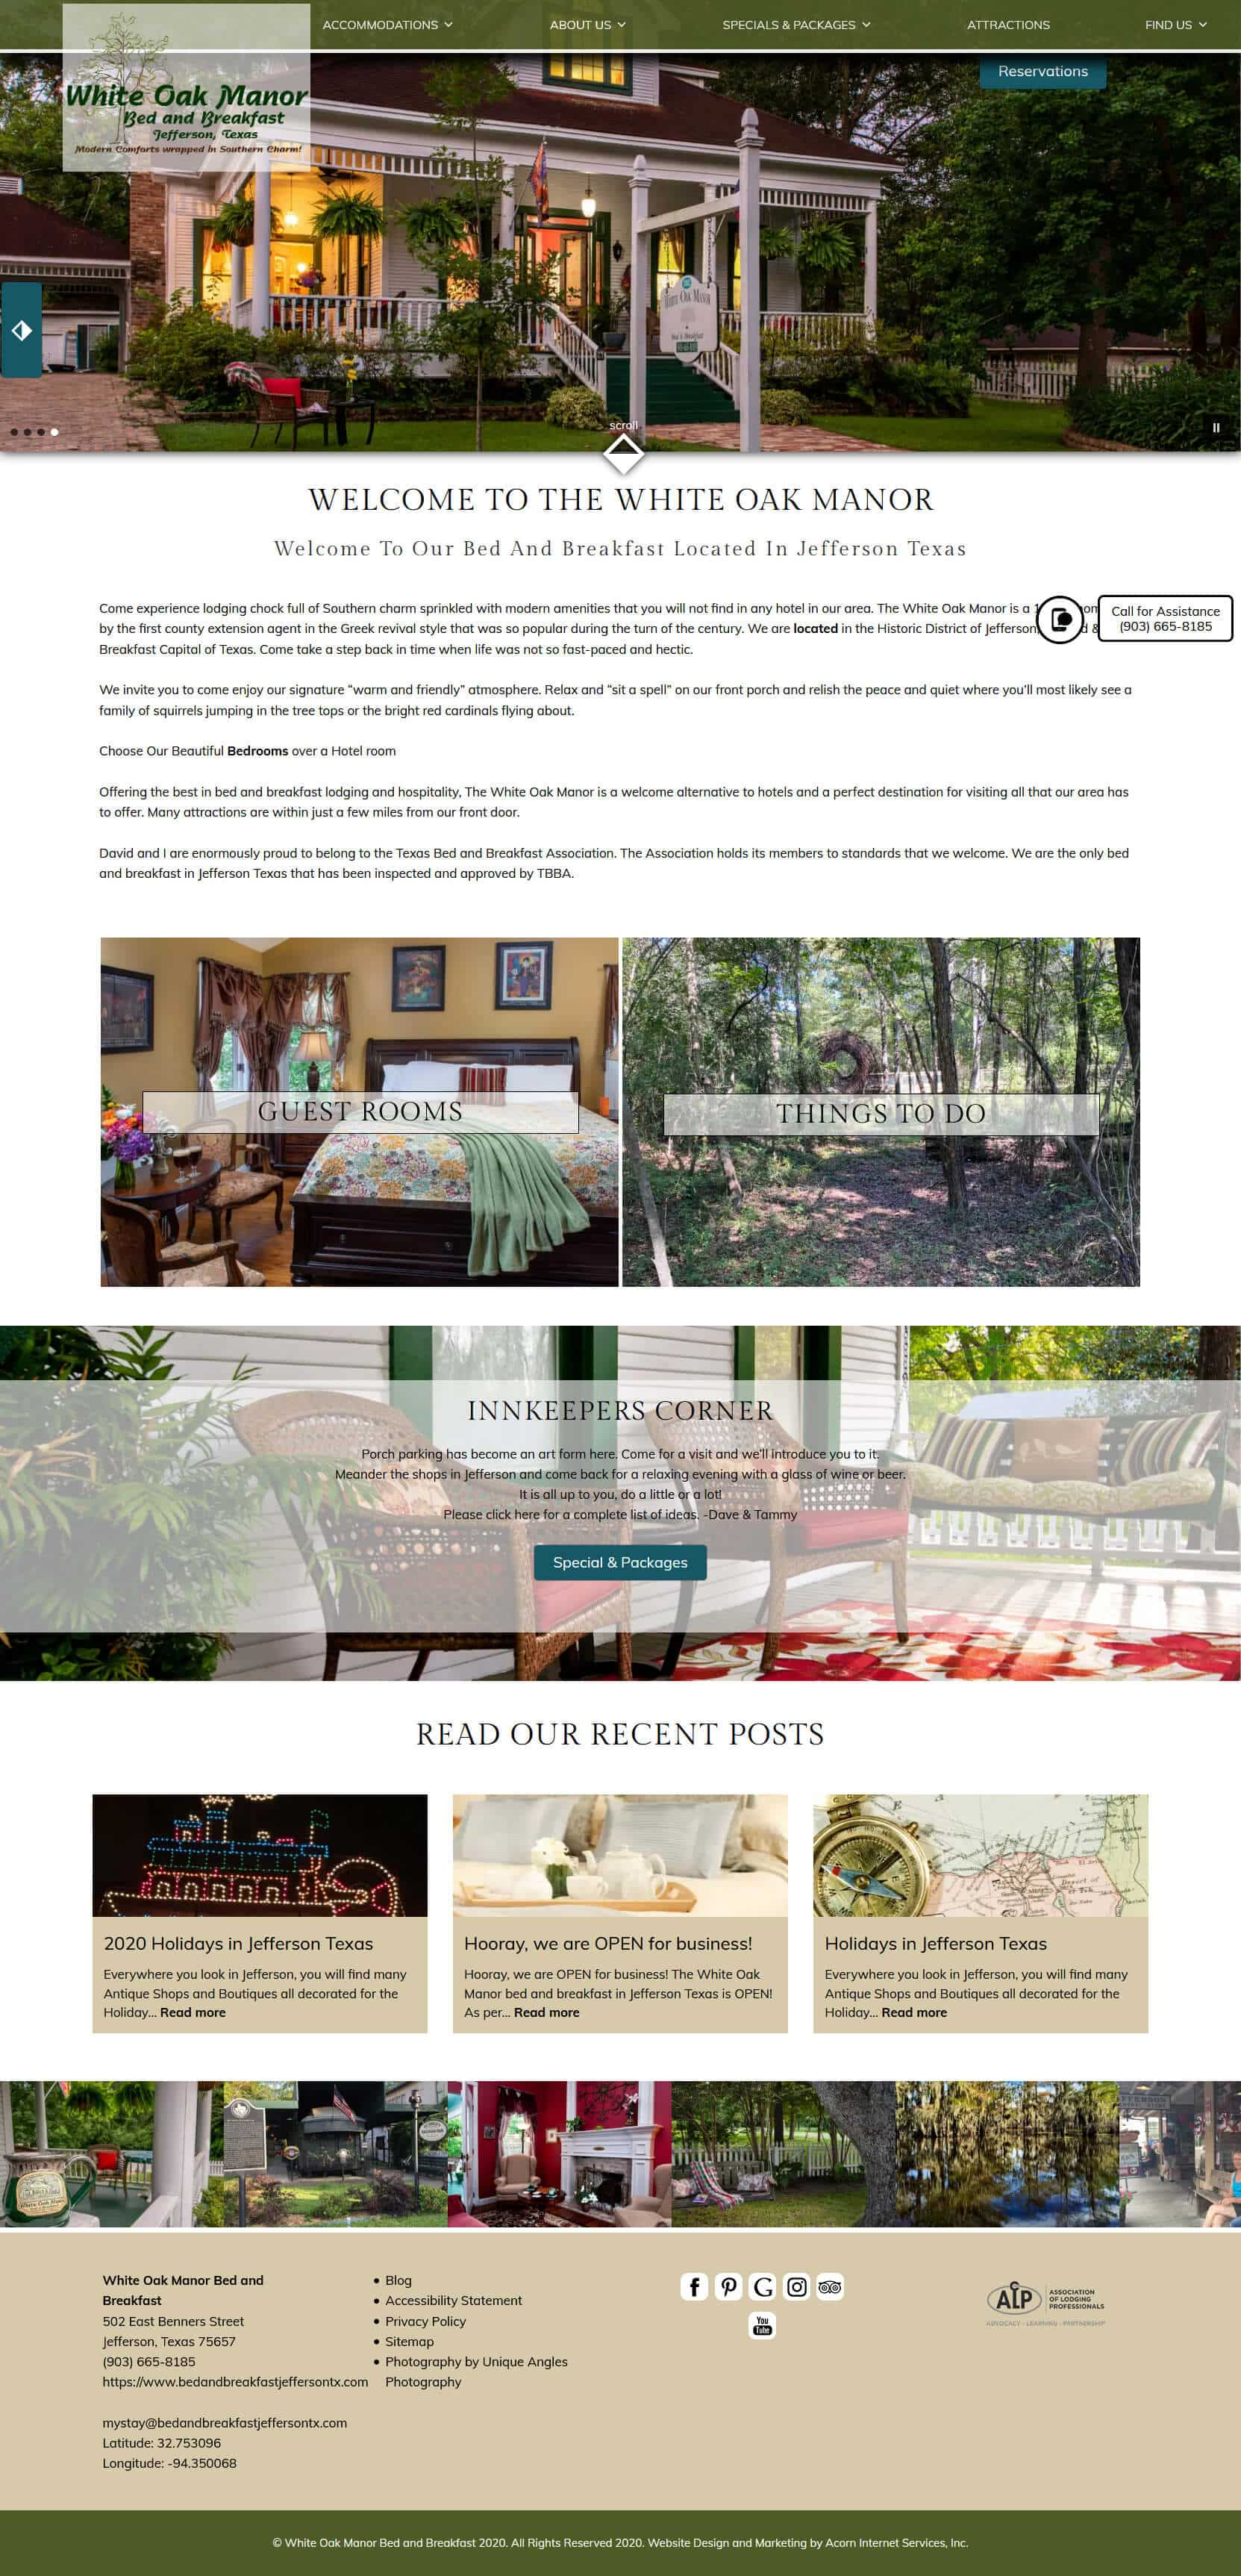 New website home page screencap for White Oak Manor Bed and Breakfast